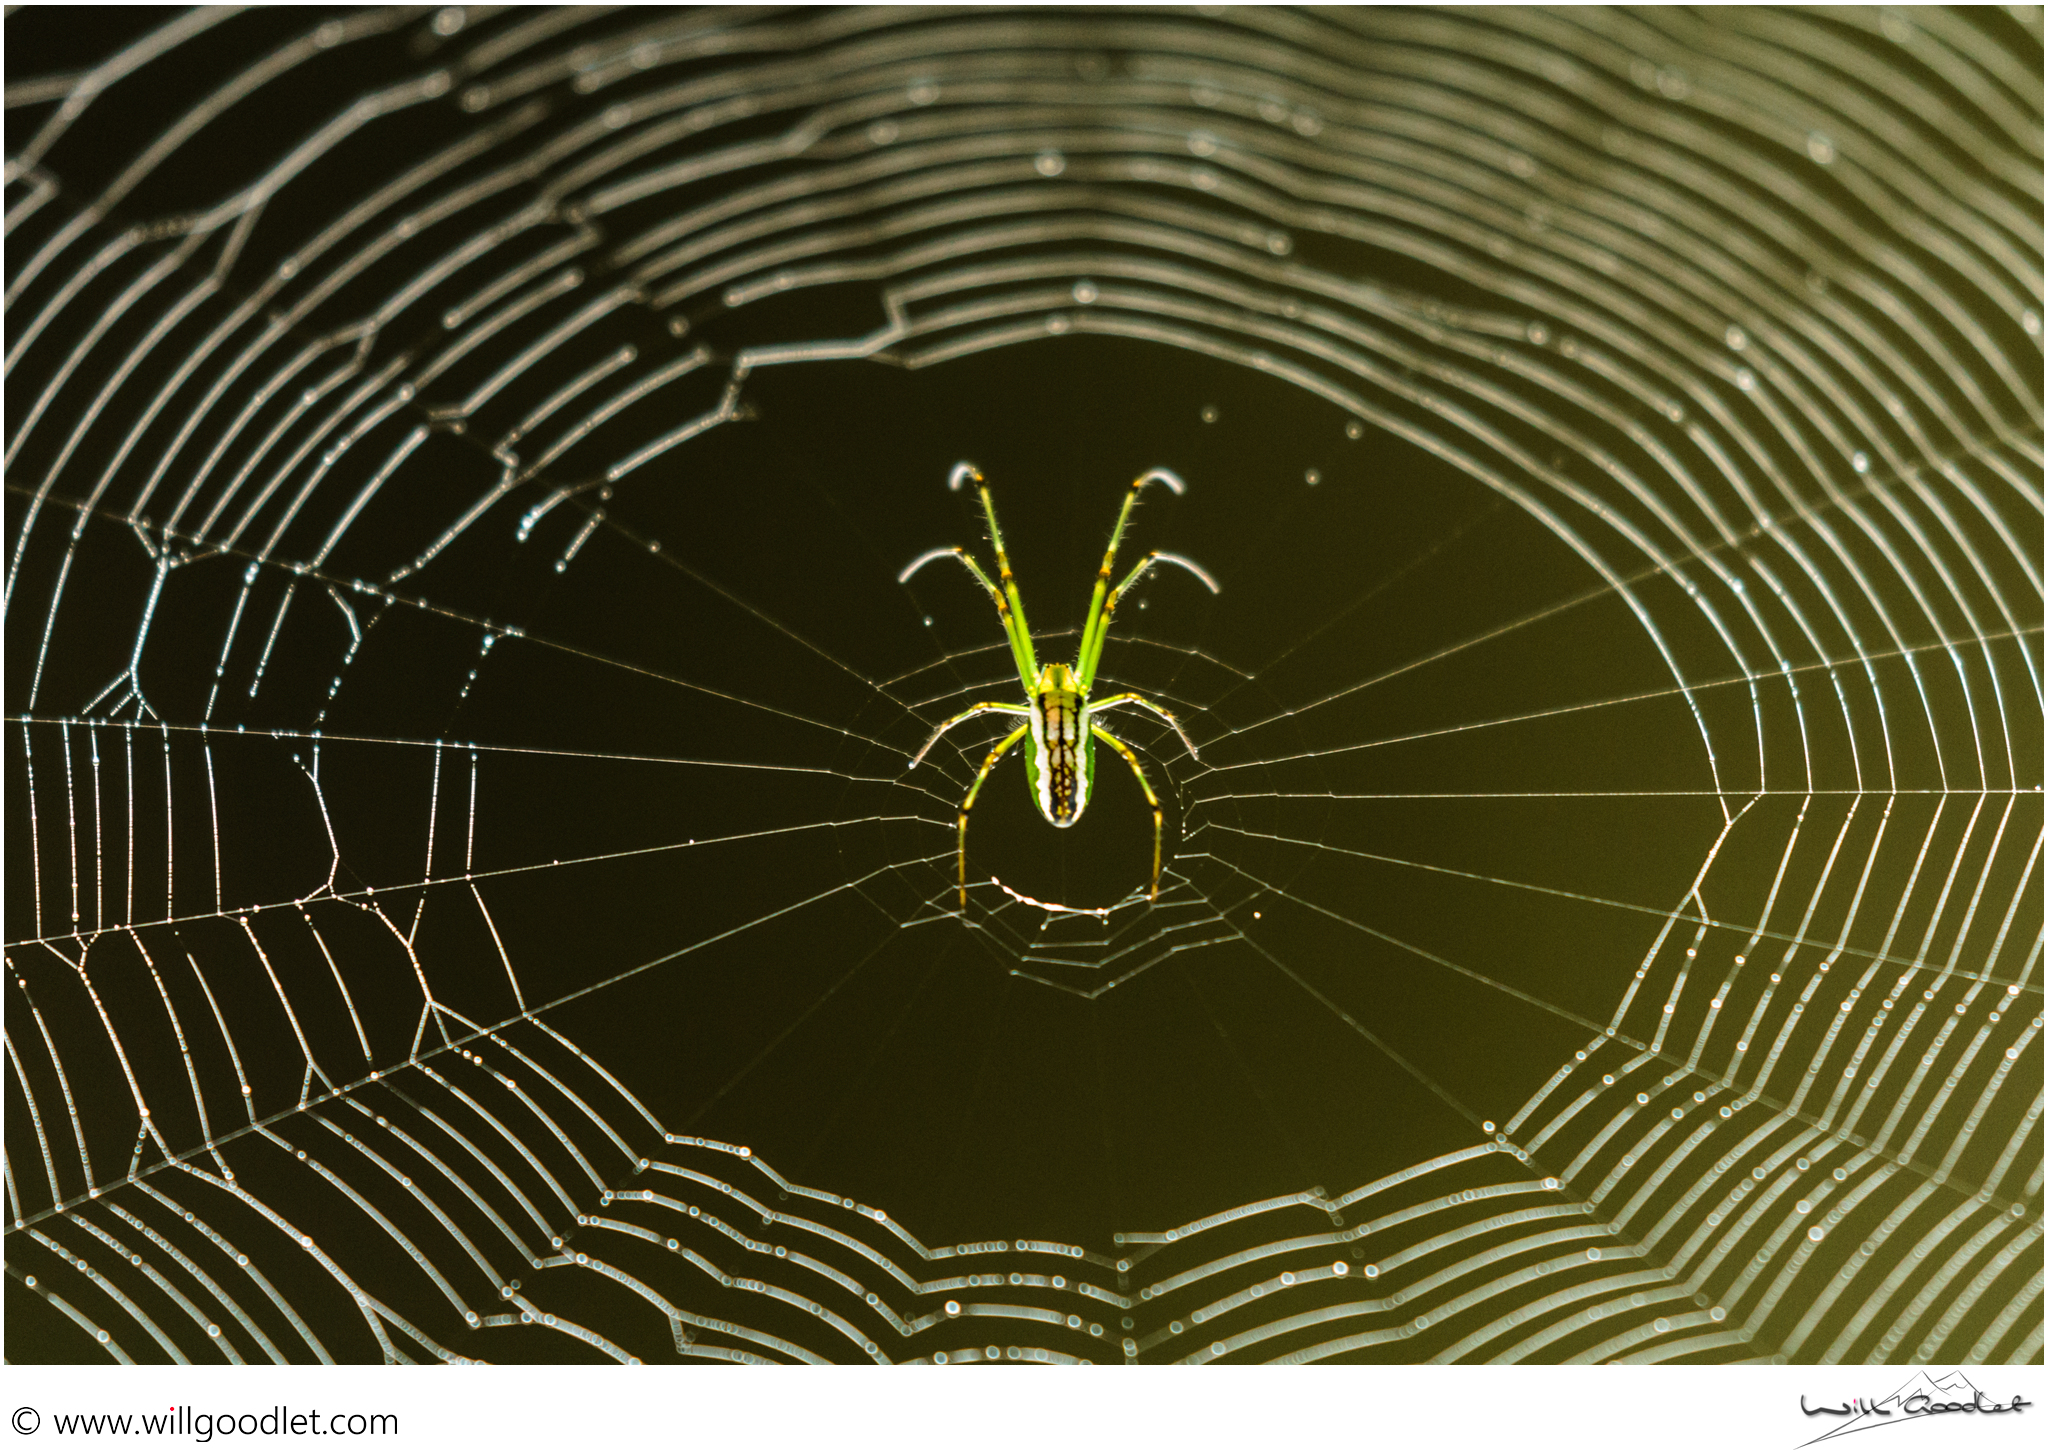 Silver Vlei Spider, Woodbush Indigenous Forest, Magoebaskloof, South Africa.